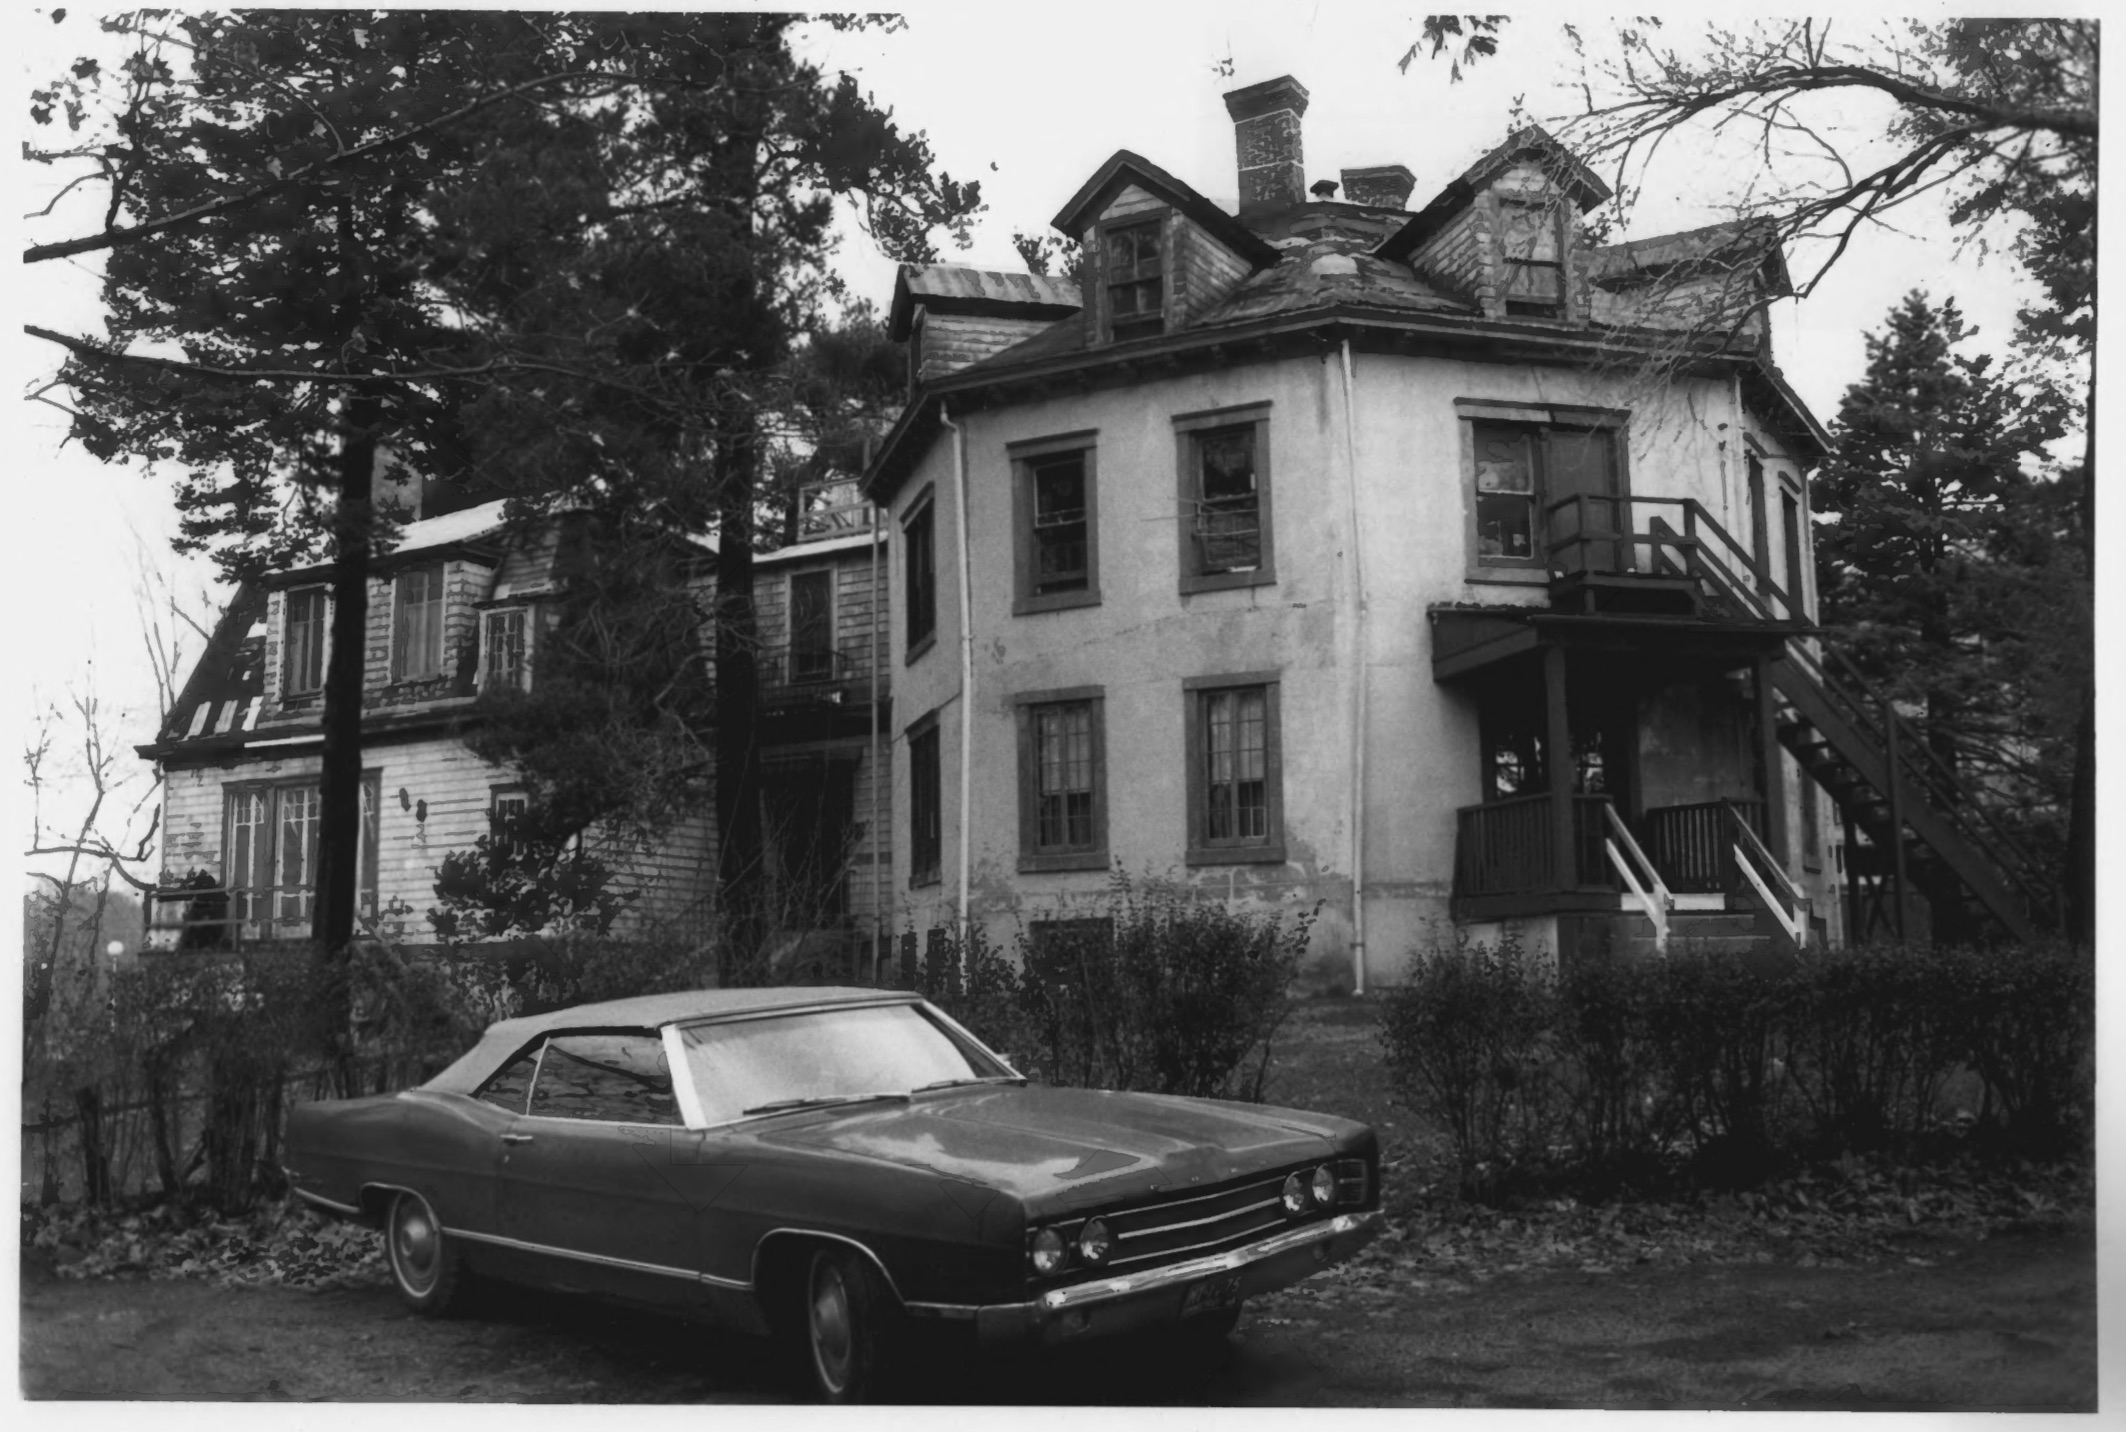 The Octagon House in August of 1979 by Stephen H. Hirschberg